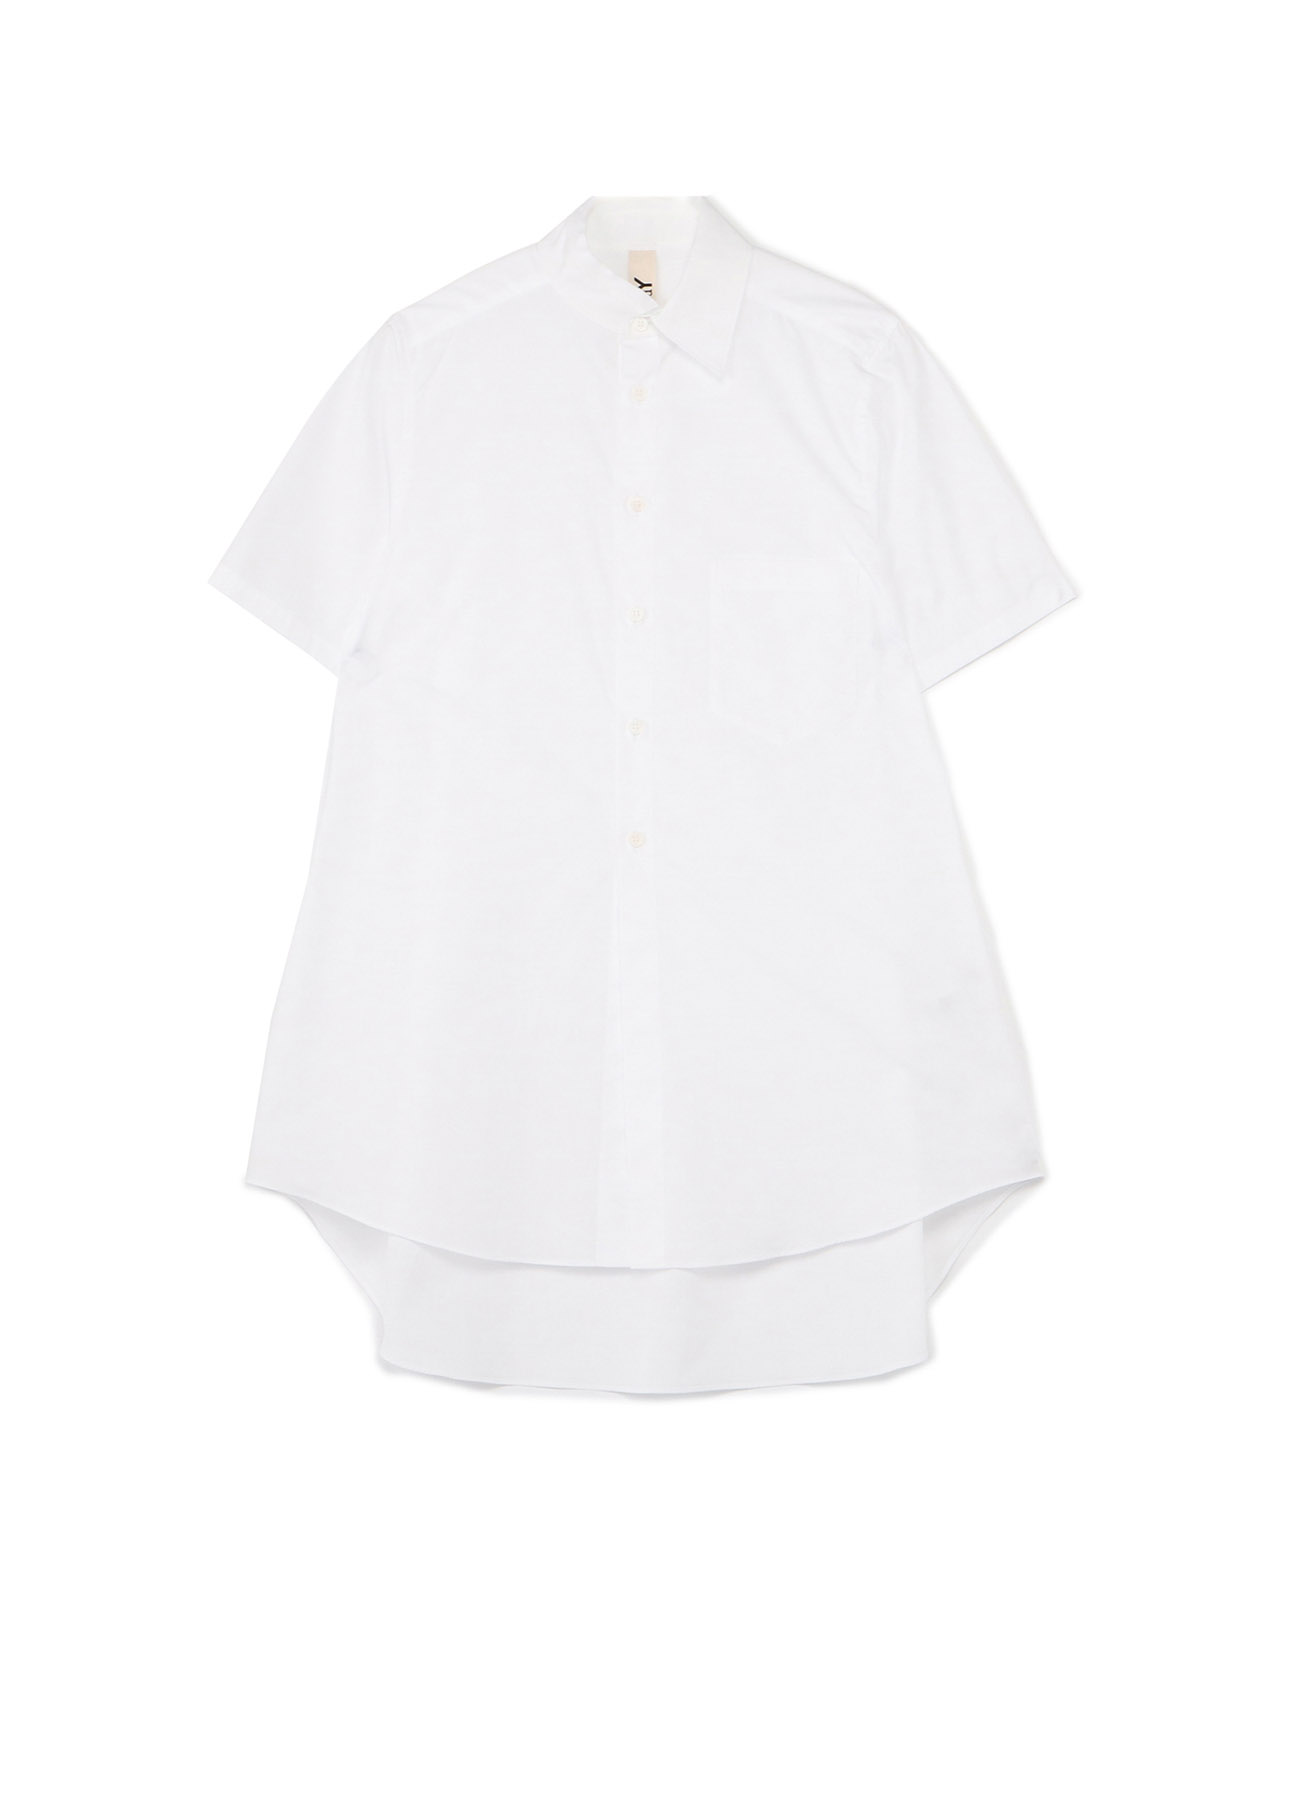 100/2 Cotton Broad Collar Cutoff Short Sleeves Shirt